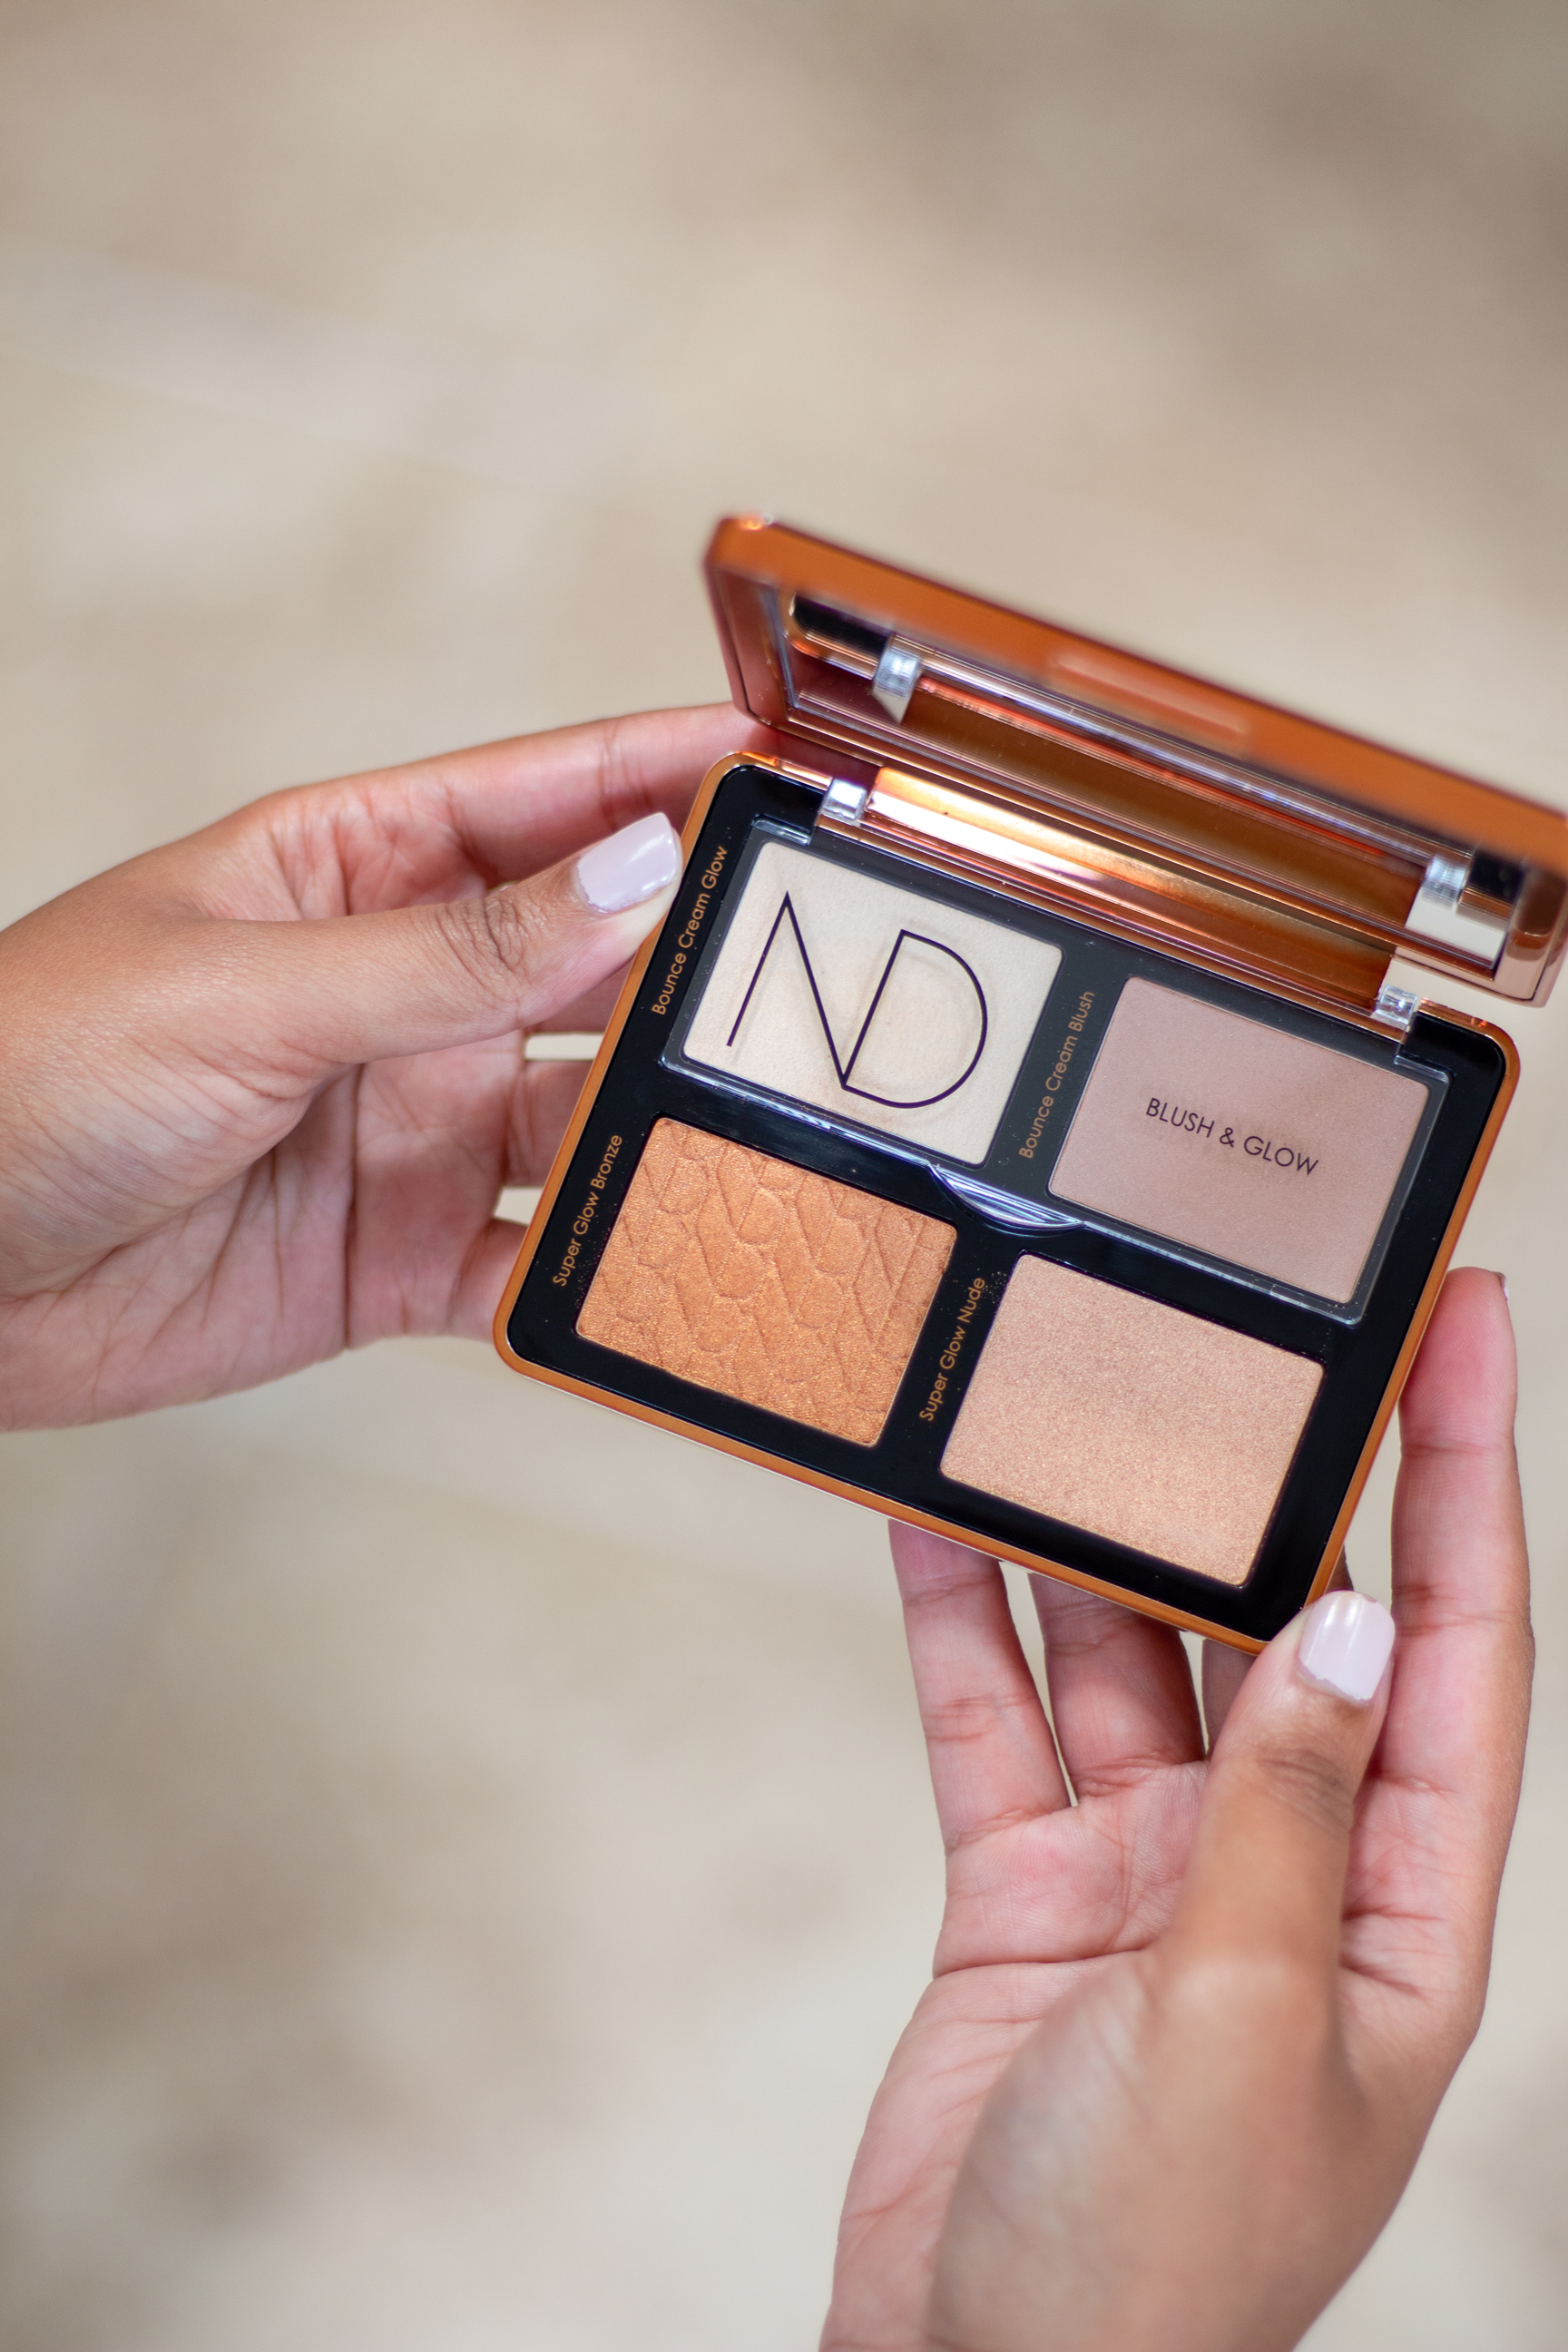 Natasha Denona Bronze Cheek Face Glow Palette Review